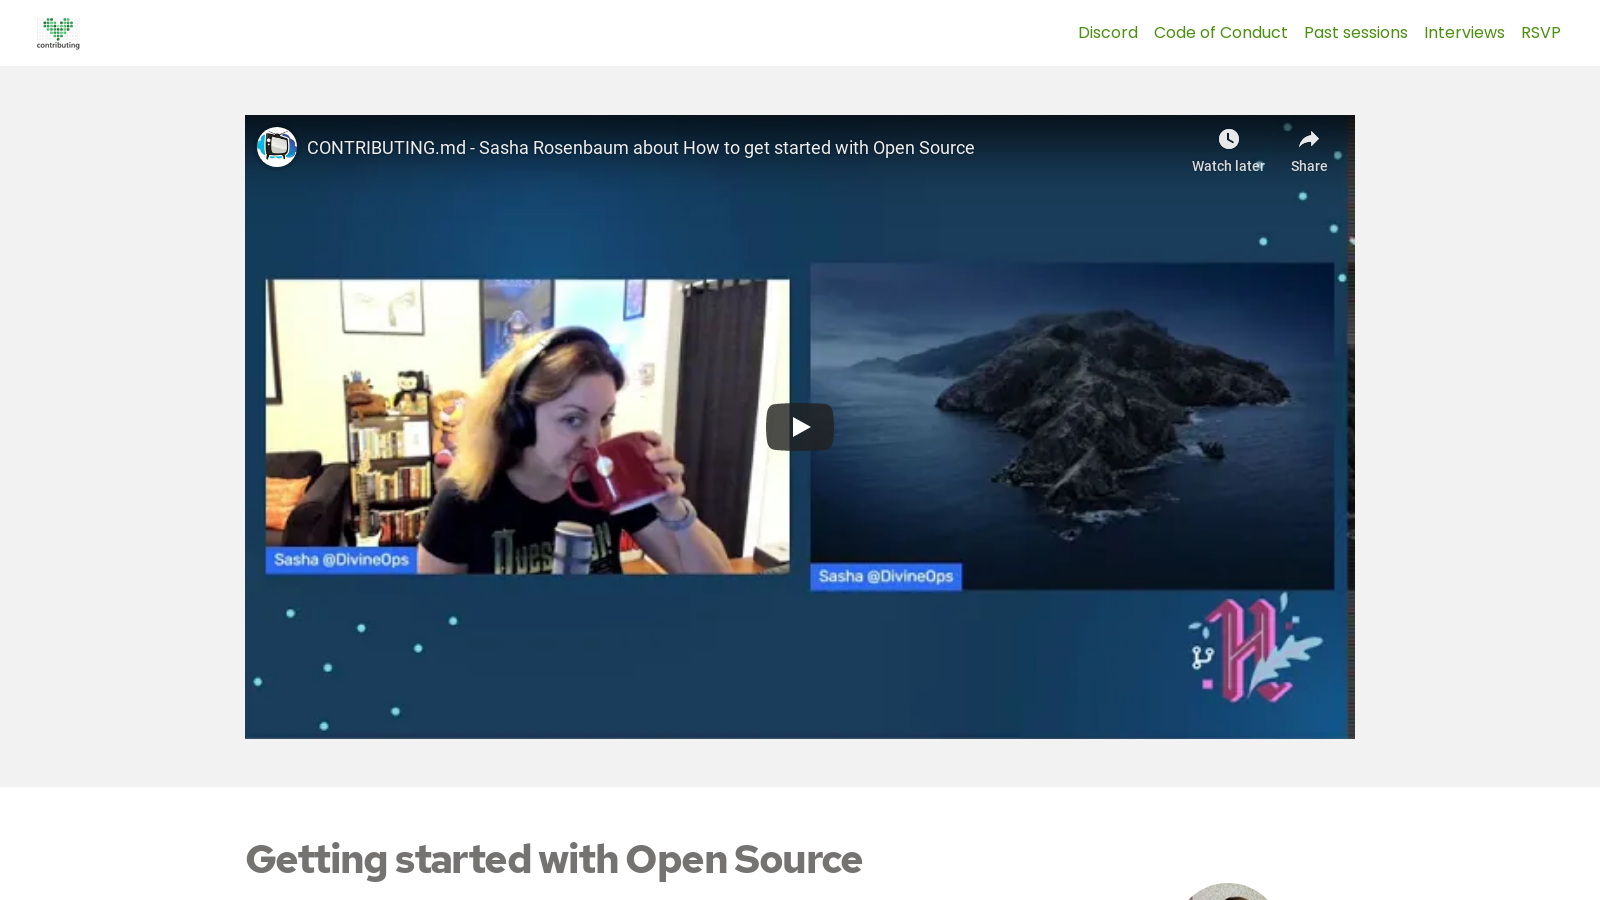 Getting started with Open Source